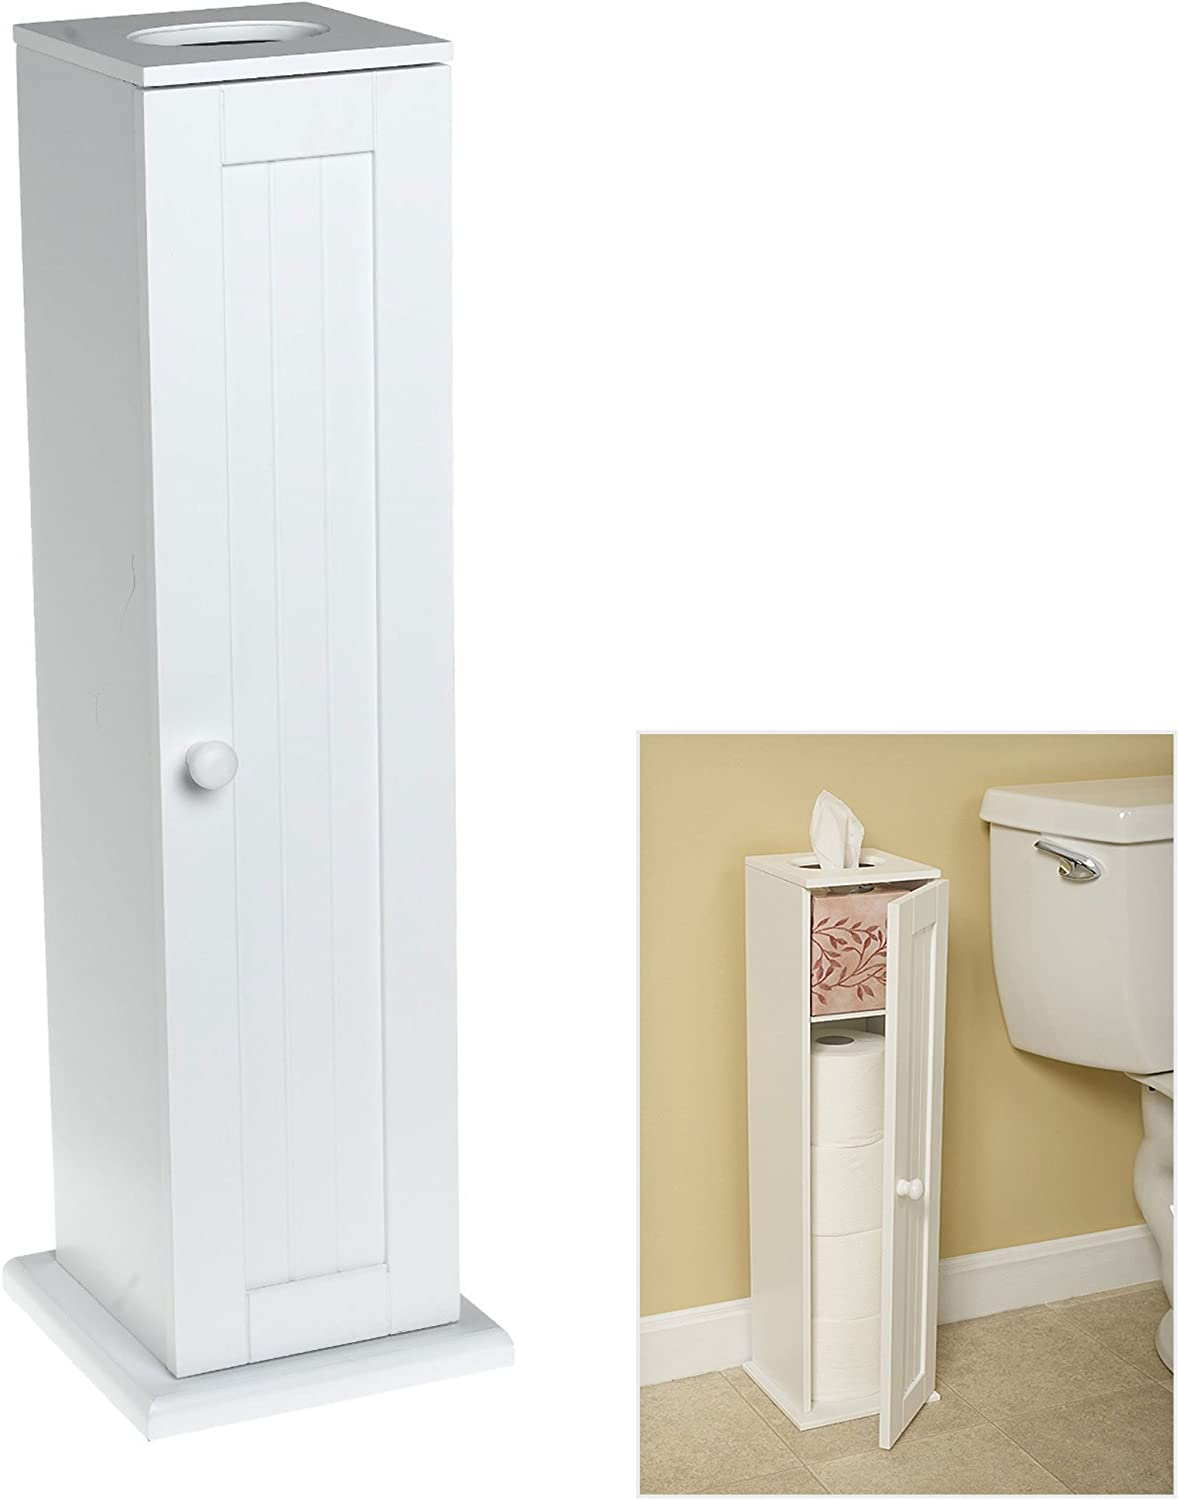 Amazon Com Free Standing White Toilet Paper Bathroom Cabinet Holder Home Improvement